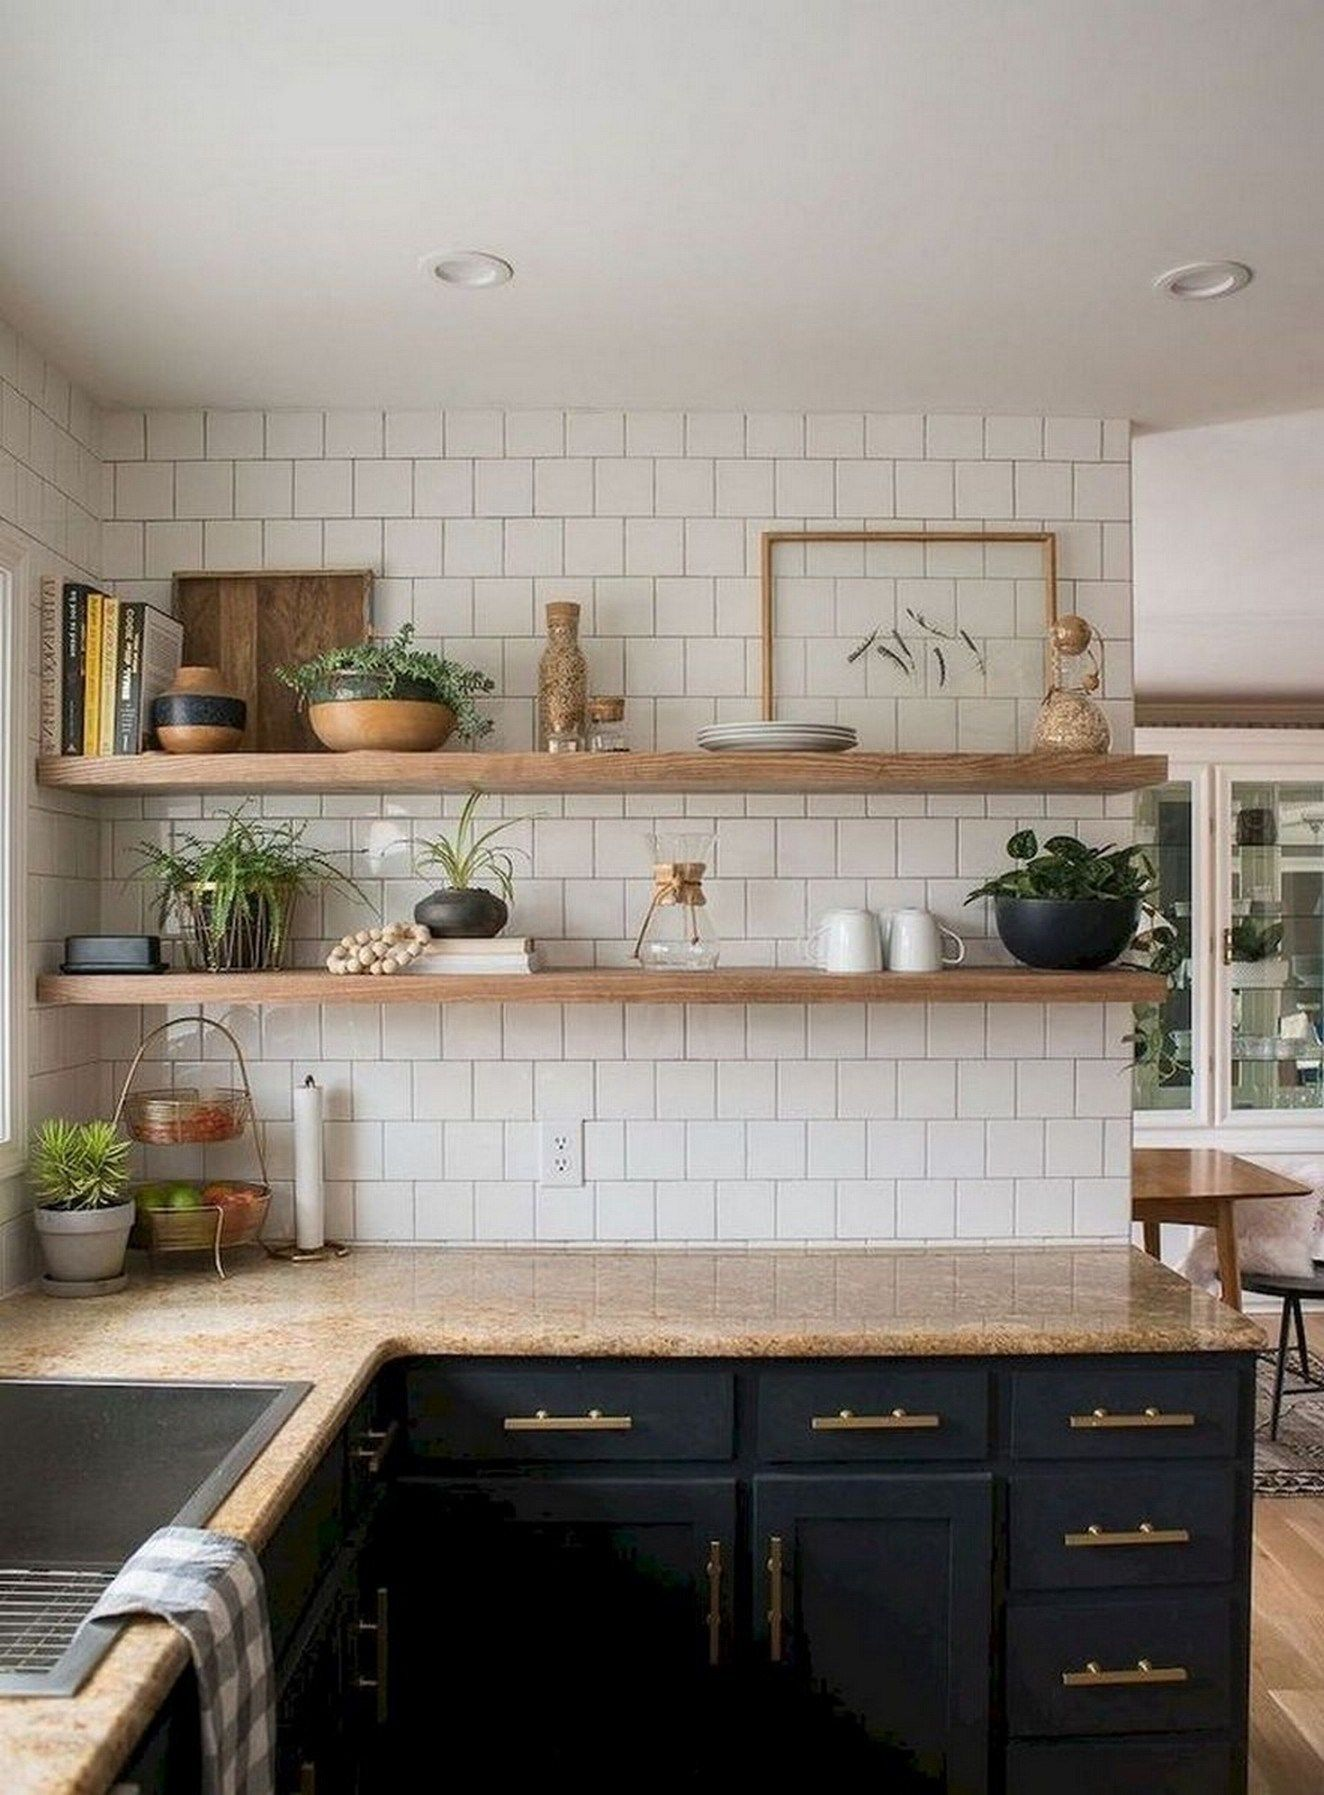 60 Kitchen Ideas Design Low Budget To Tiny House You Are Looking For Page 36 Andro Com Diy Kitchen Renovation Rustic Modern Kitchen Rustic Kitchen Decor